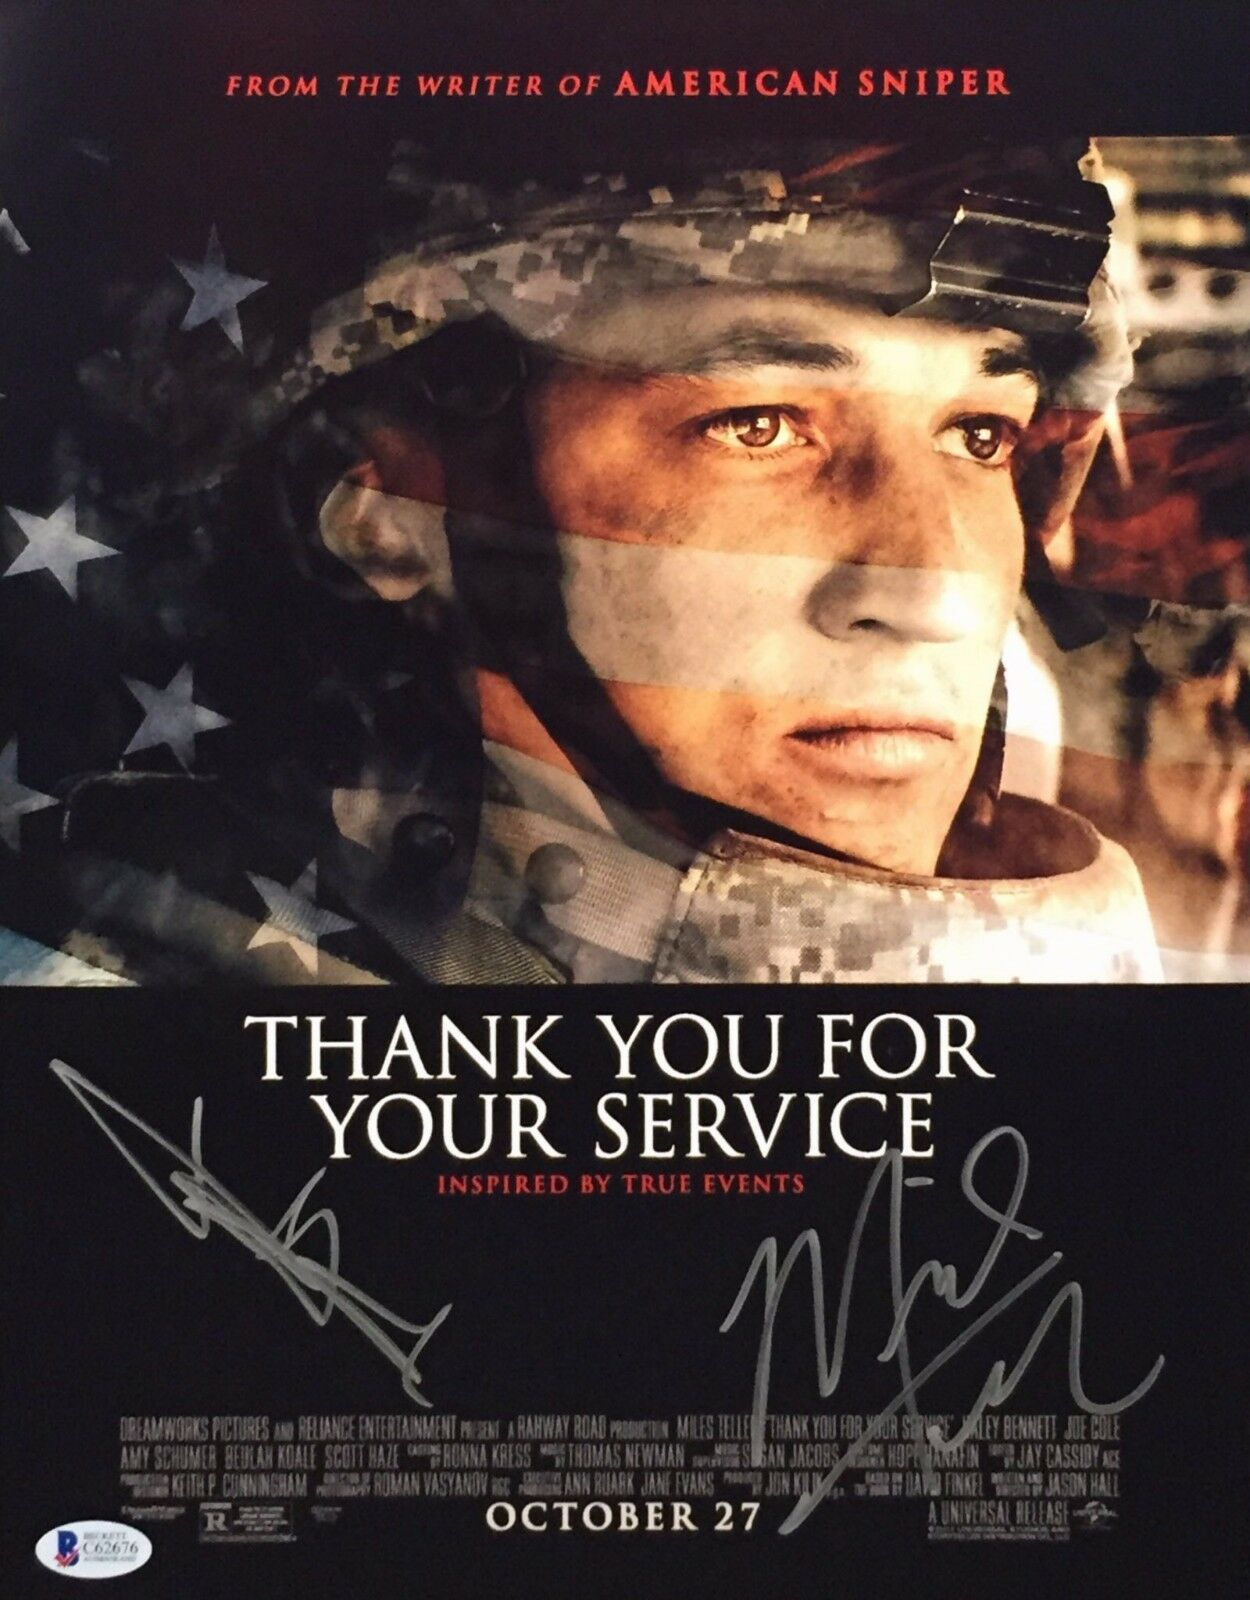 Jason Teller & Miles Teller Signed 'Thank You For Your Service' 11x14 Photo BAS